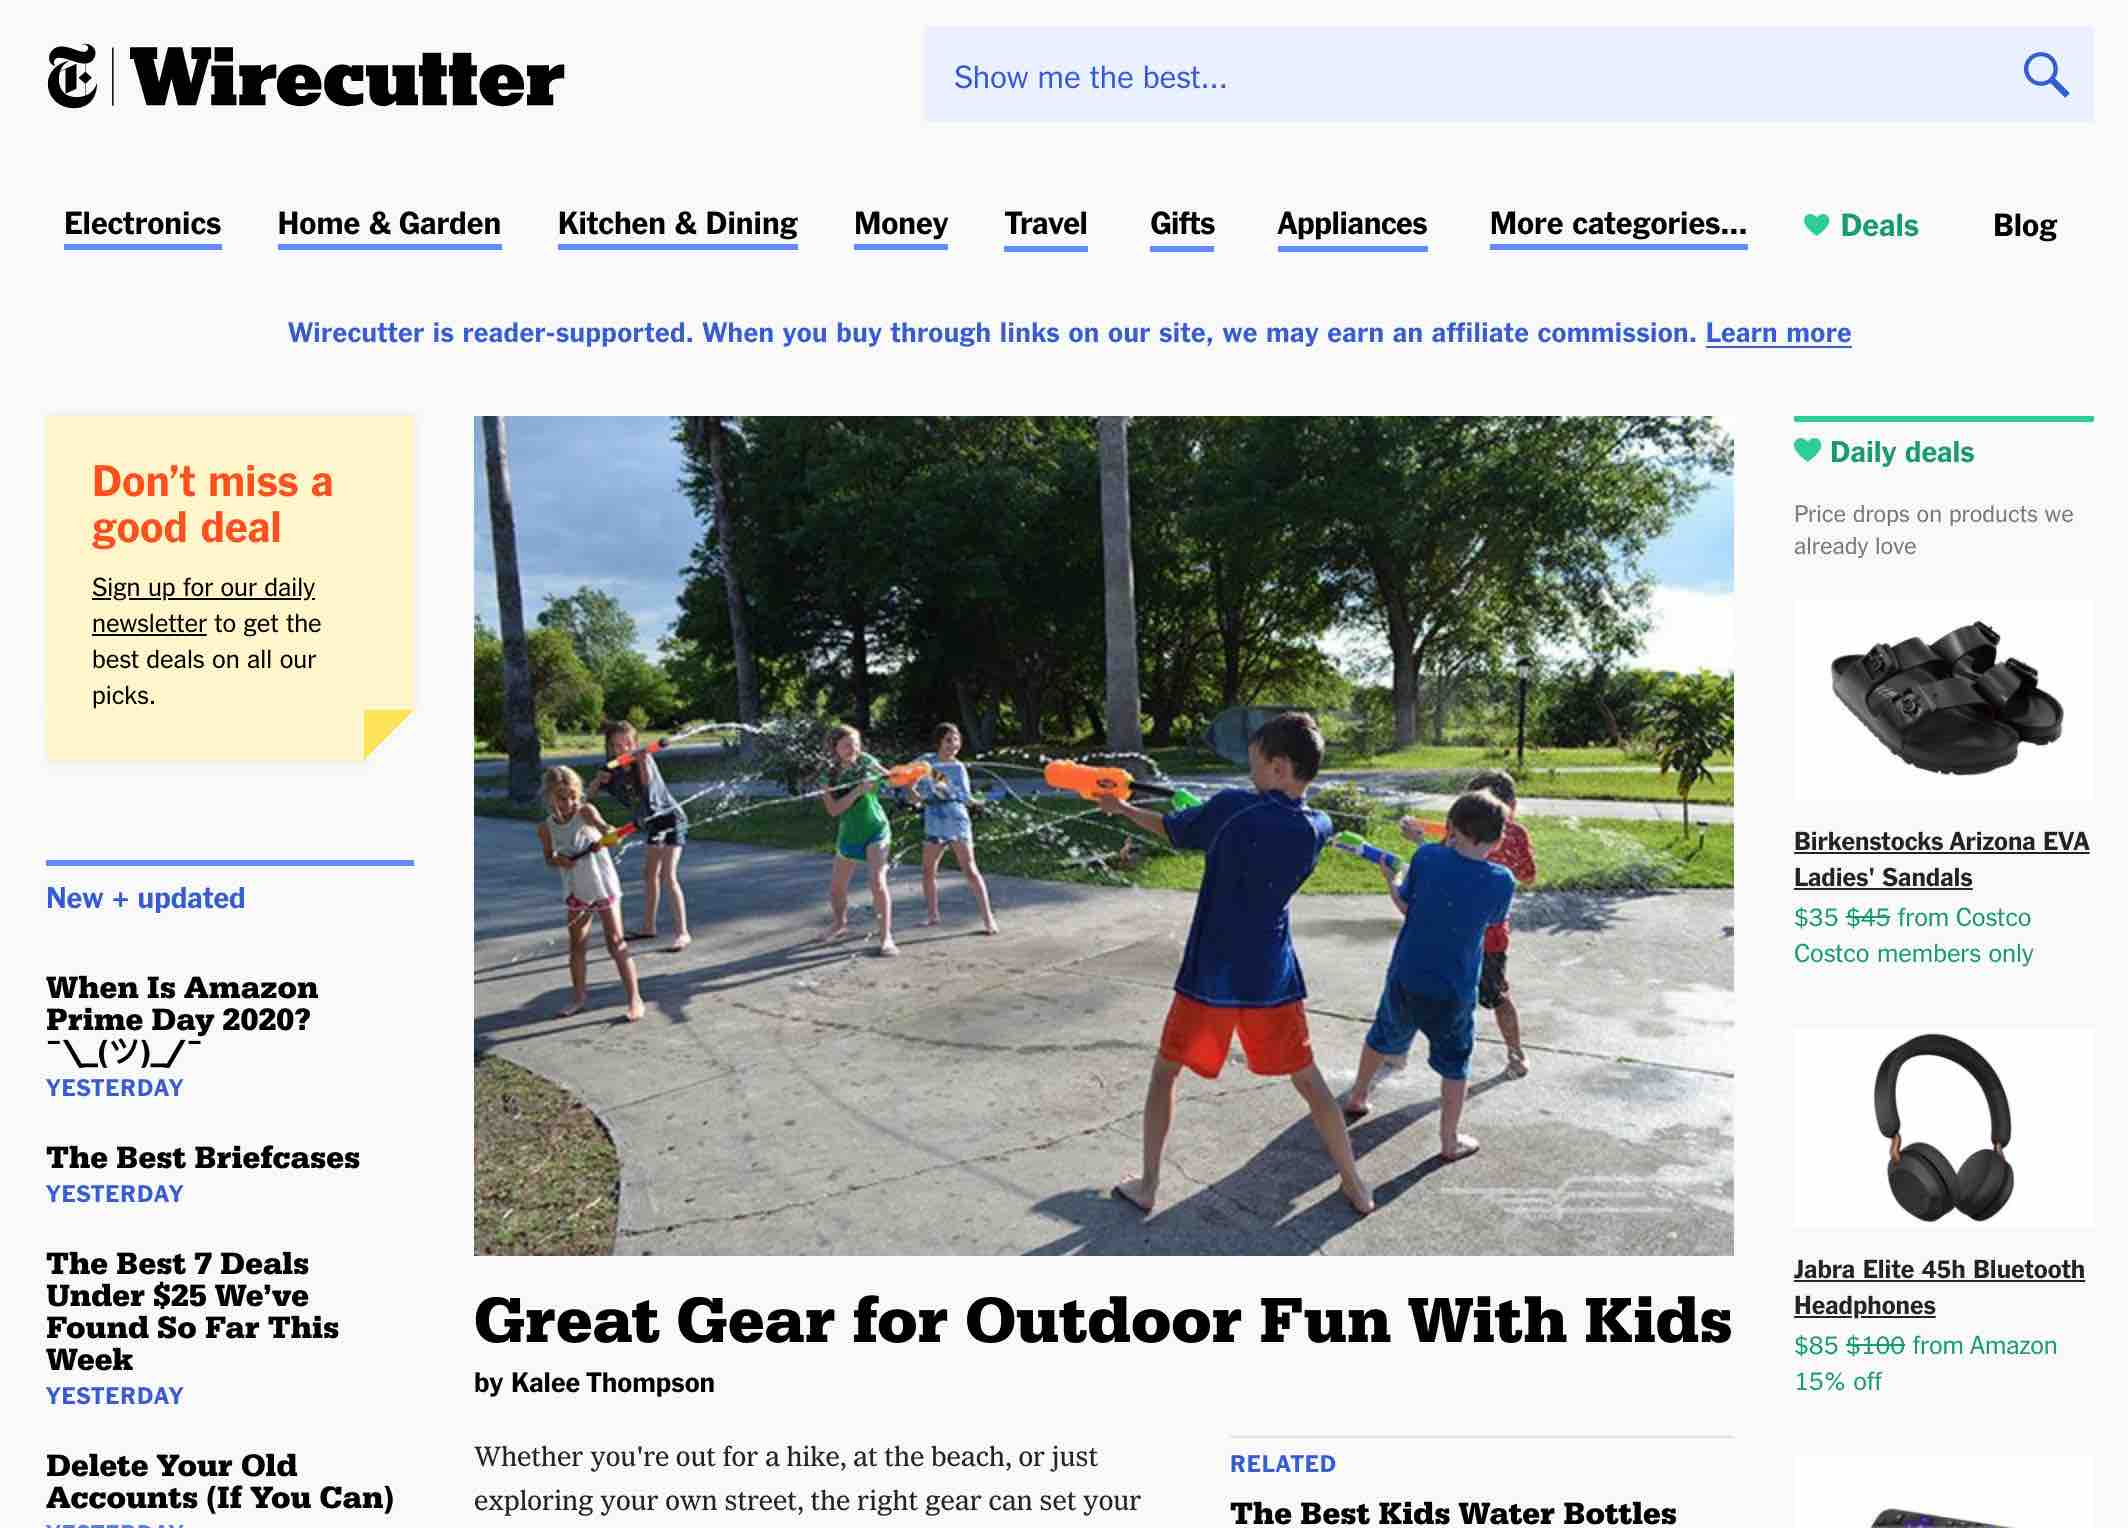 New York Times' product review site The Wirecutter